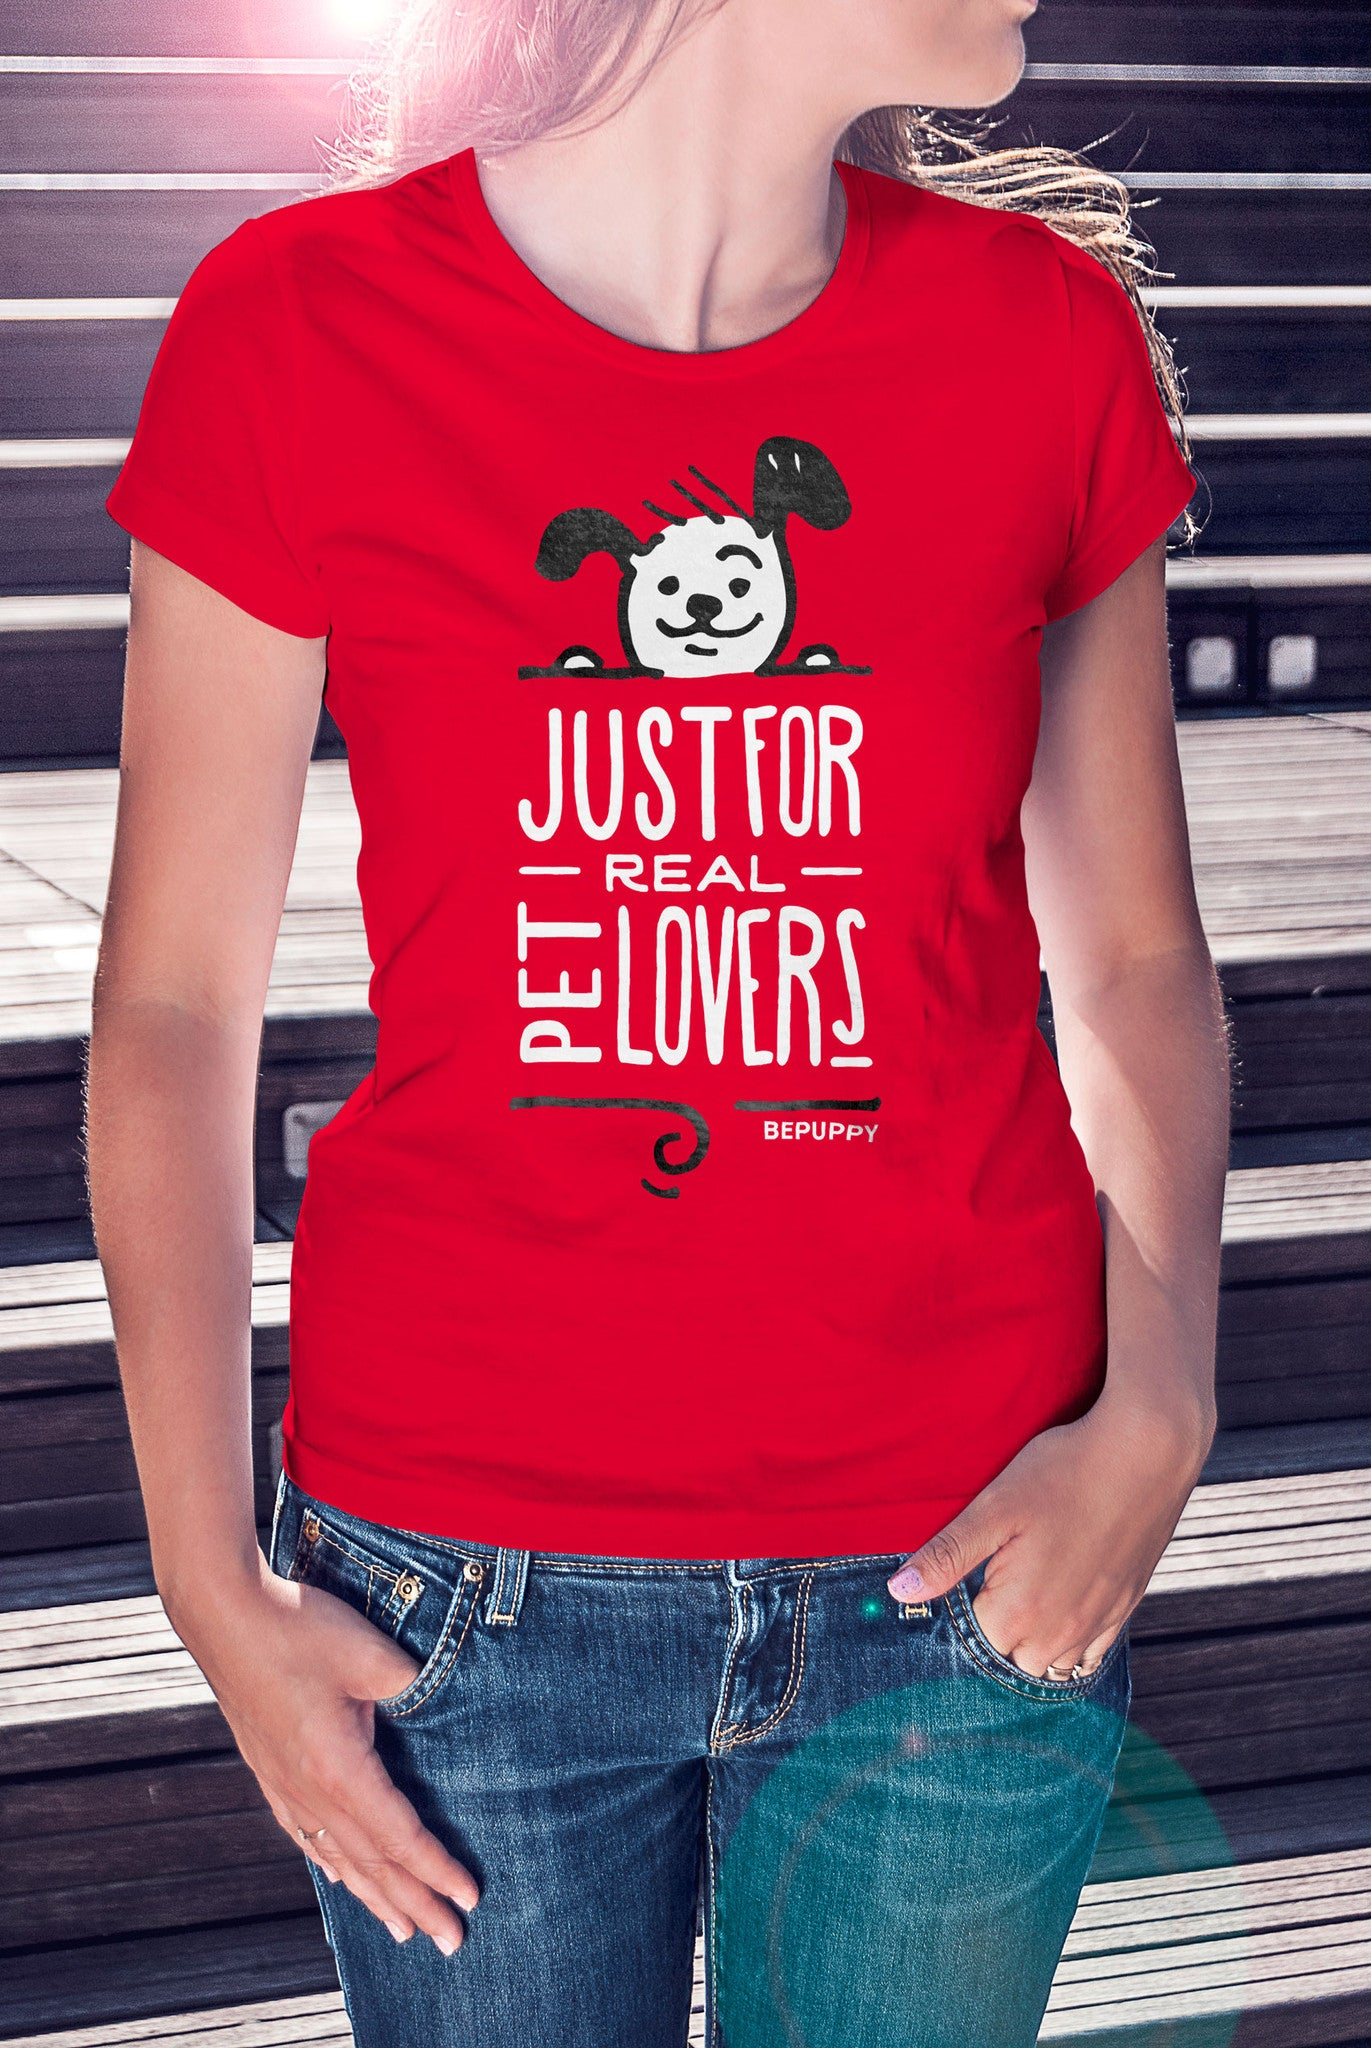 T-shirt for woman, just for real pet lovers! Dog lovers - BEPUPPY